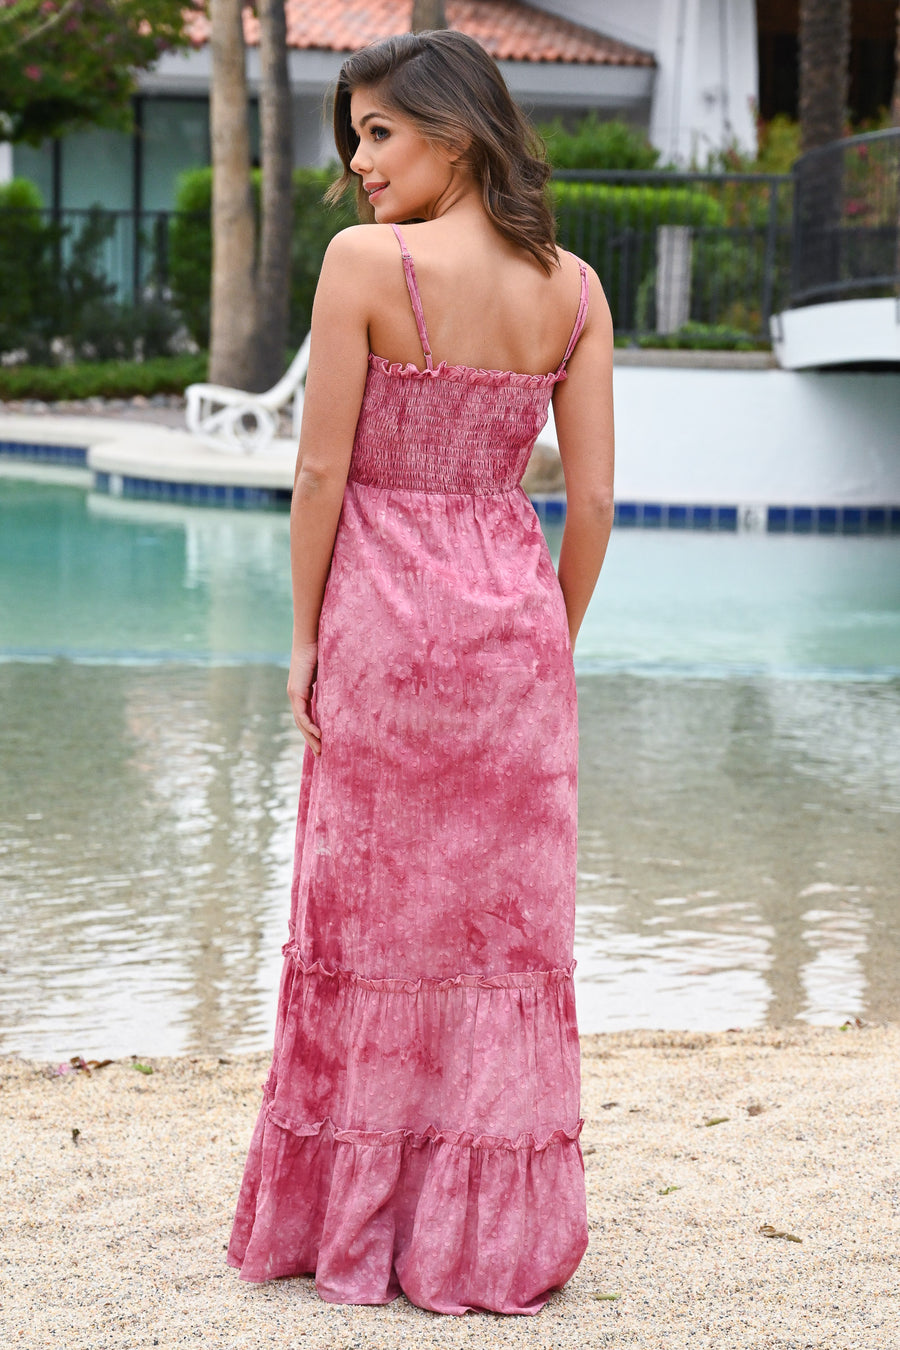 Desert Rose Tie-Dye Maxi Dress - Pink women's ruffled long dress, Closet Candy Boutique 1